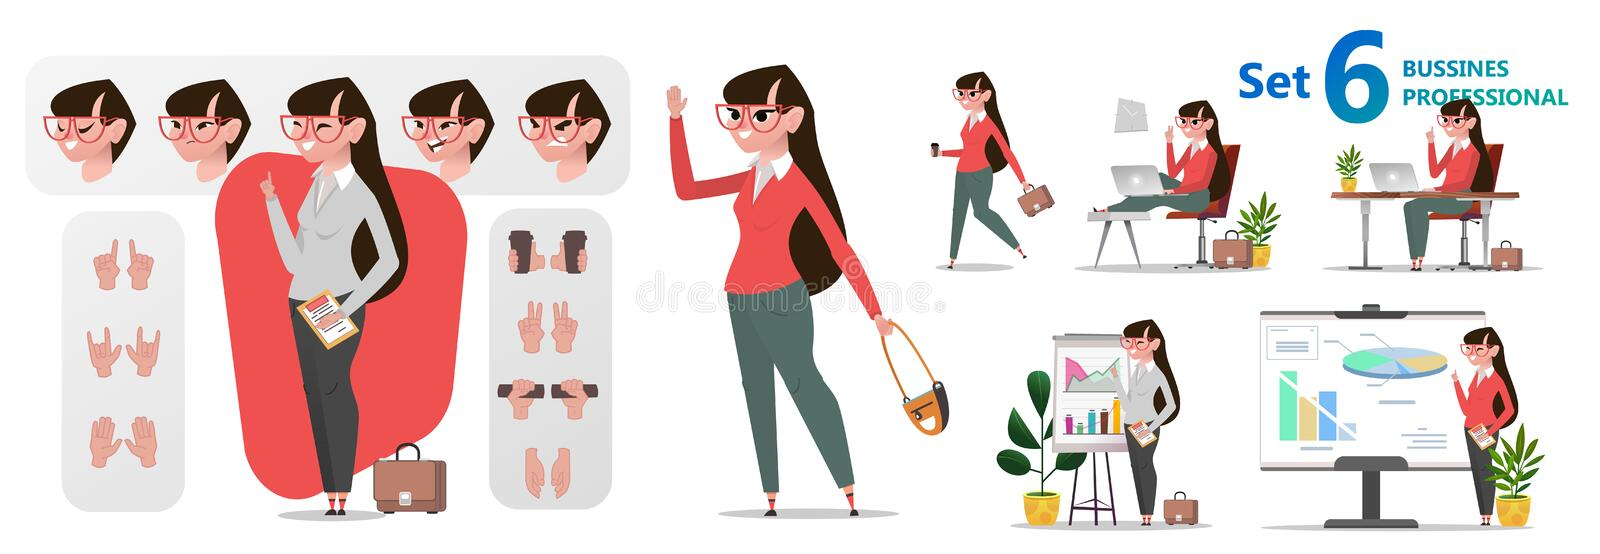 Stylized characters set for animation. Woman office professions vector illustration